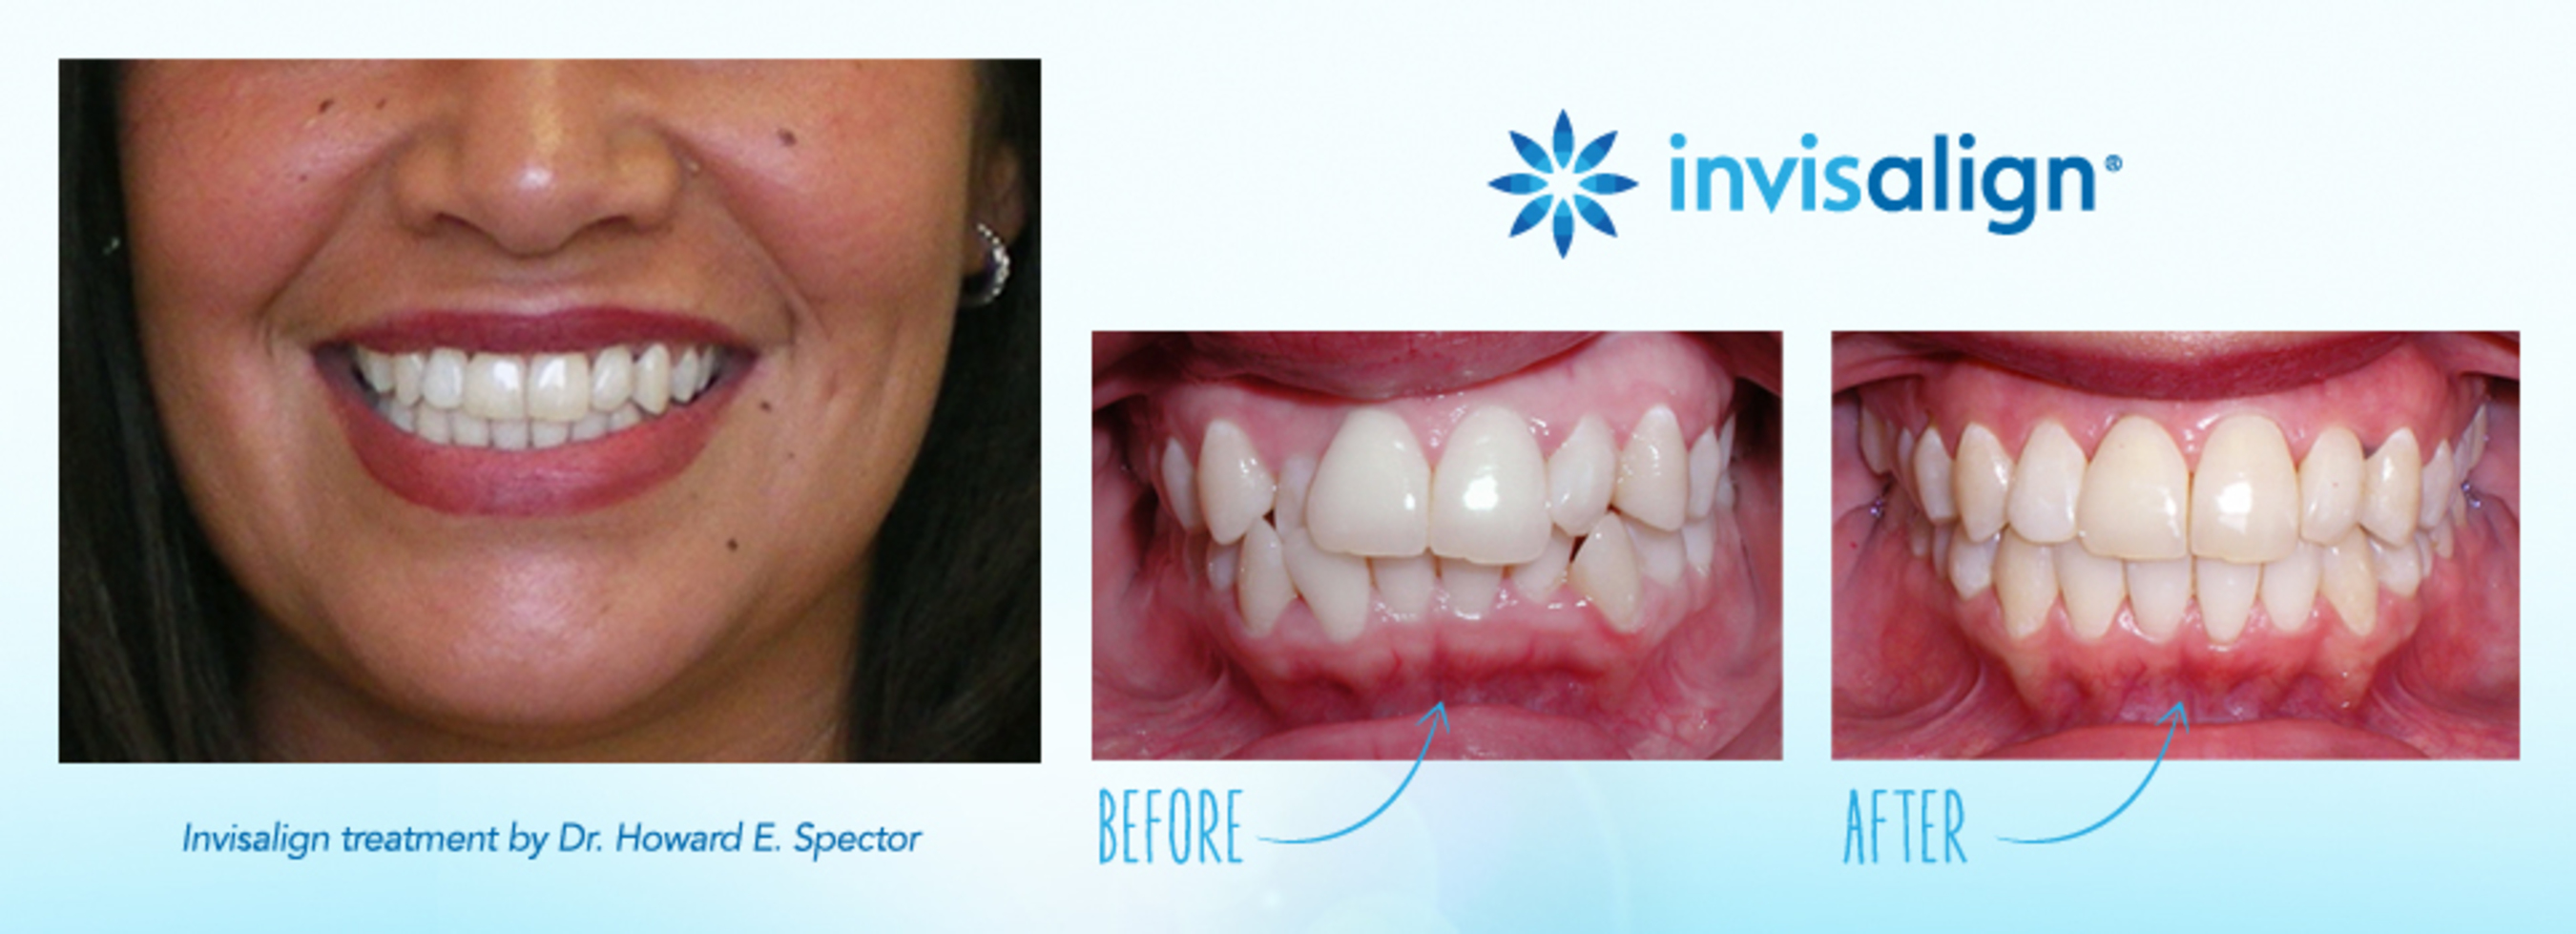 Invisalign treatment by Dr. Howard E. Spector - Treatment duration: 16 months - Disclaimer: The images are presented for reference purposes only and are not intended to represent the actual results a future Invisalign patient will achieve. Treatment times and results will vary by patient. (PRNewsFoto/Invisalign)